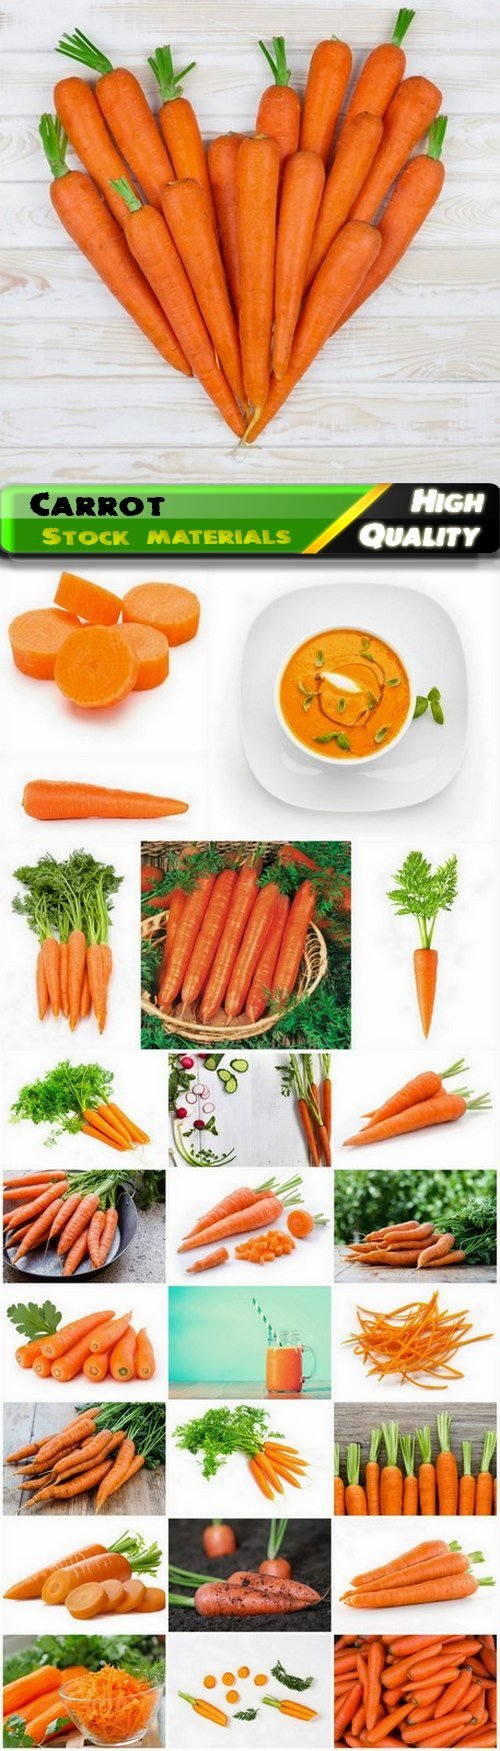 Carrot is genus of plants of the Umbilical family 25 HQ Jpg